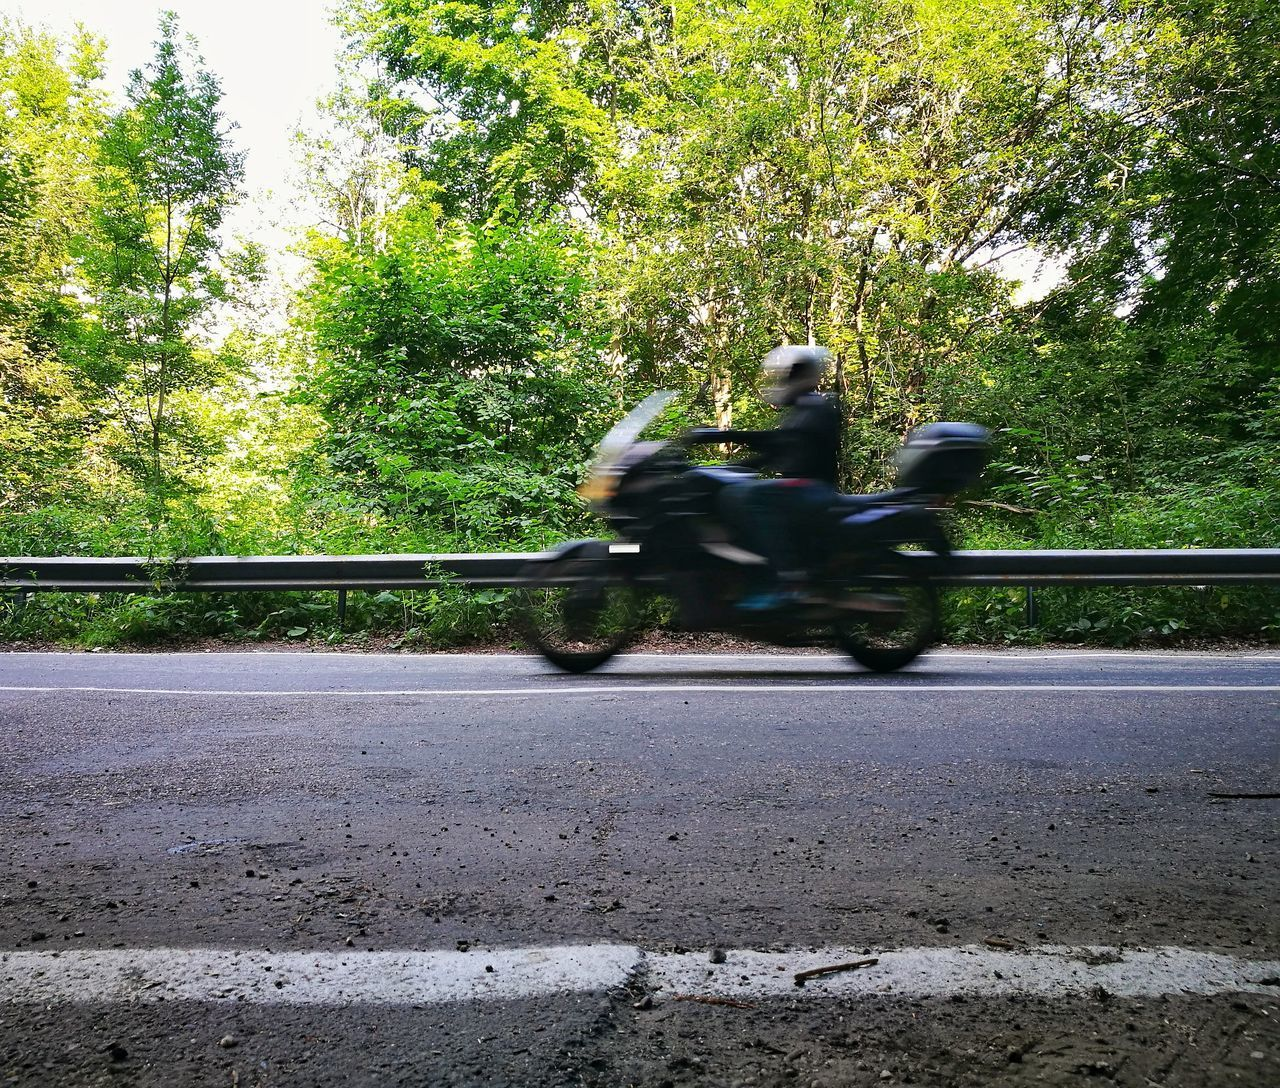 transportation, road, riding, real people, mode of transport, motorcycle, tree, land vehicle, day, blurred motion, one person, full length, men, motion, outdoors, lifestyles, sitting, nature, people